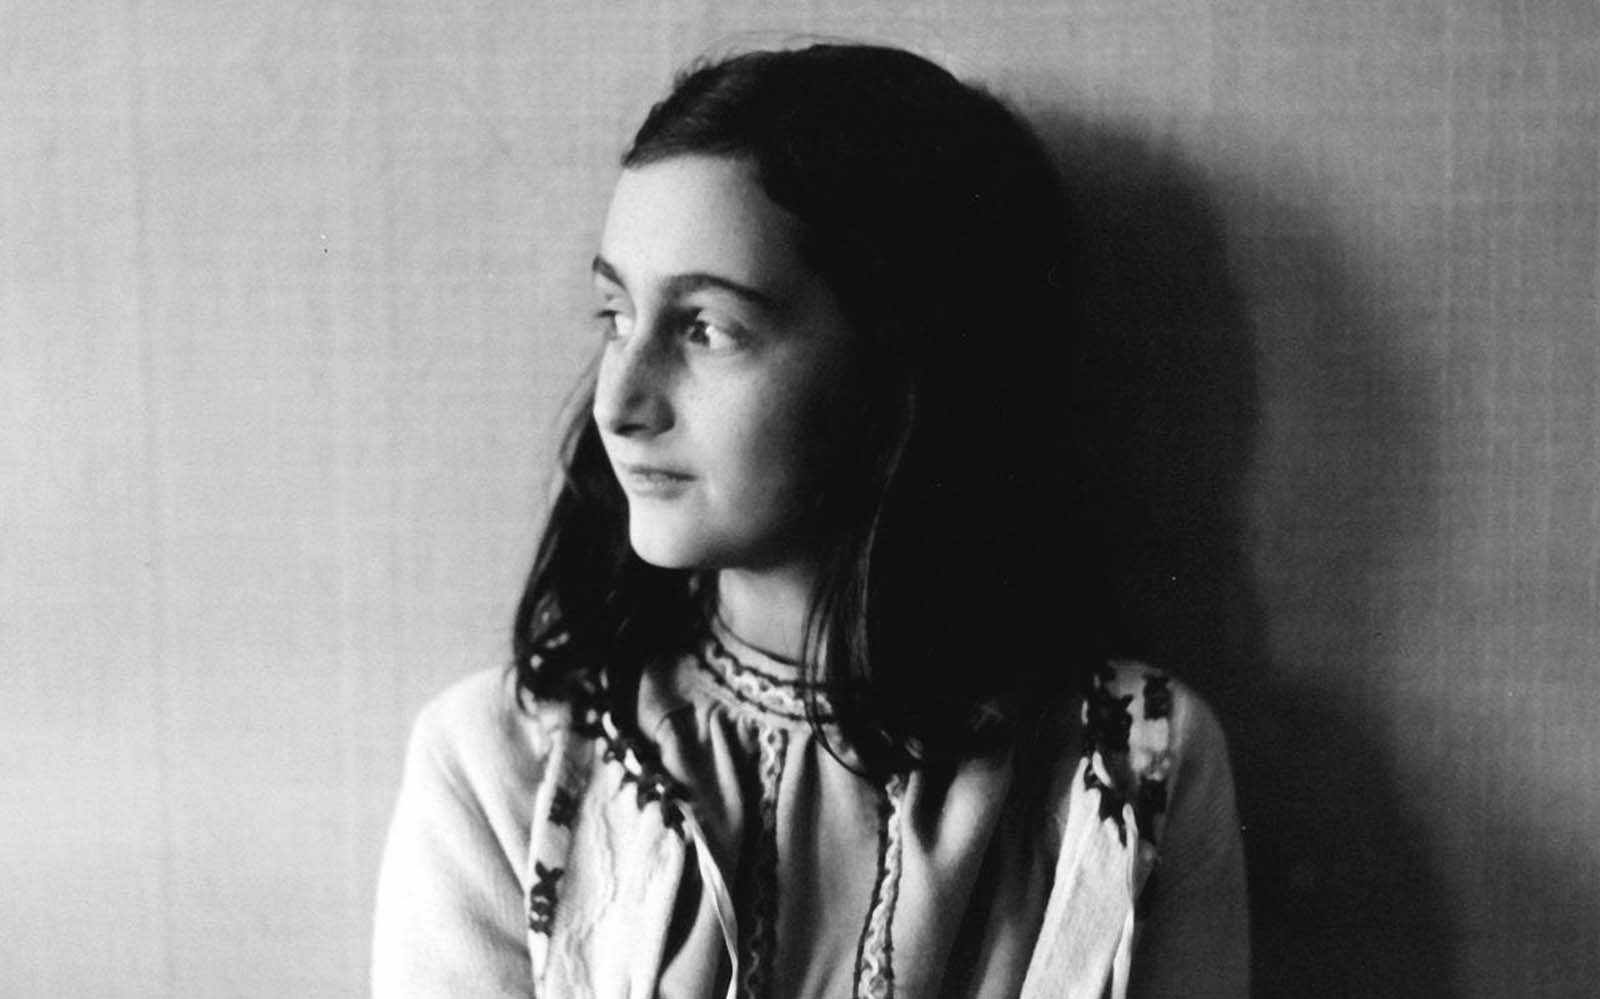 Anne Frank poses in 1941 in this photo made available by Anne Frank House in Amsterdam, Netherlands. It is astonishing how some photos from the period have crystal clarity like this, but it does happen depending upon how well they were preserved over time.